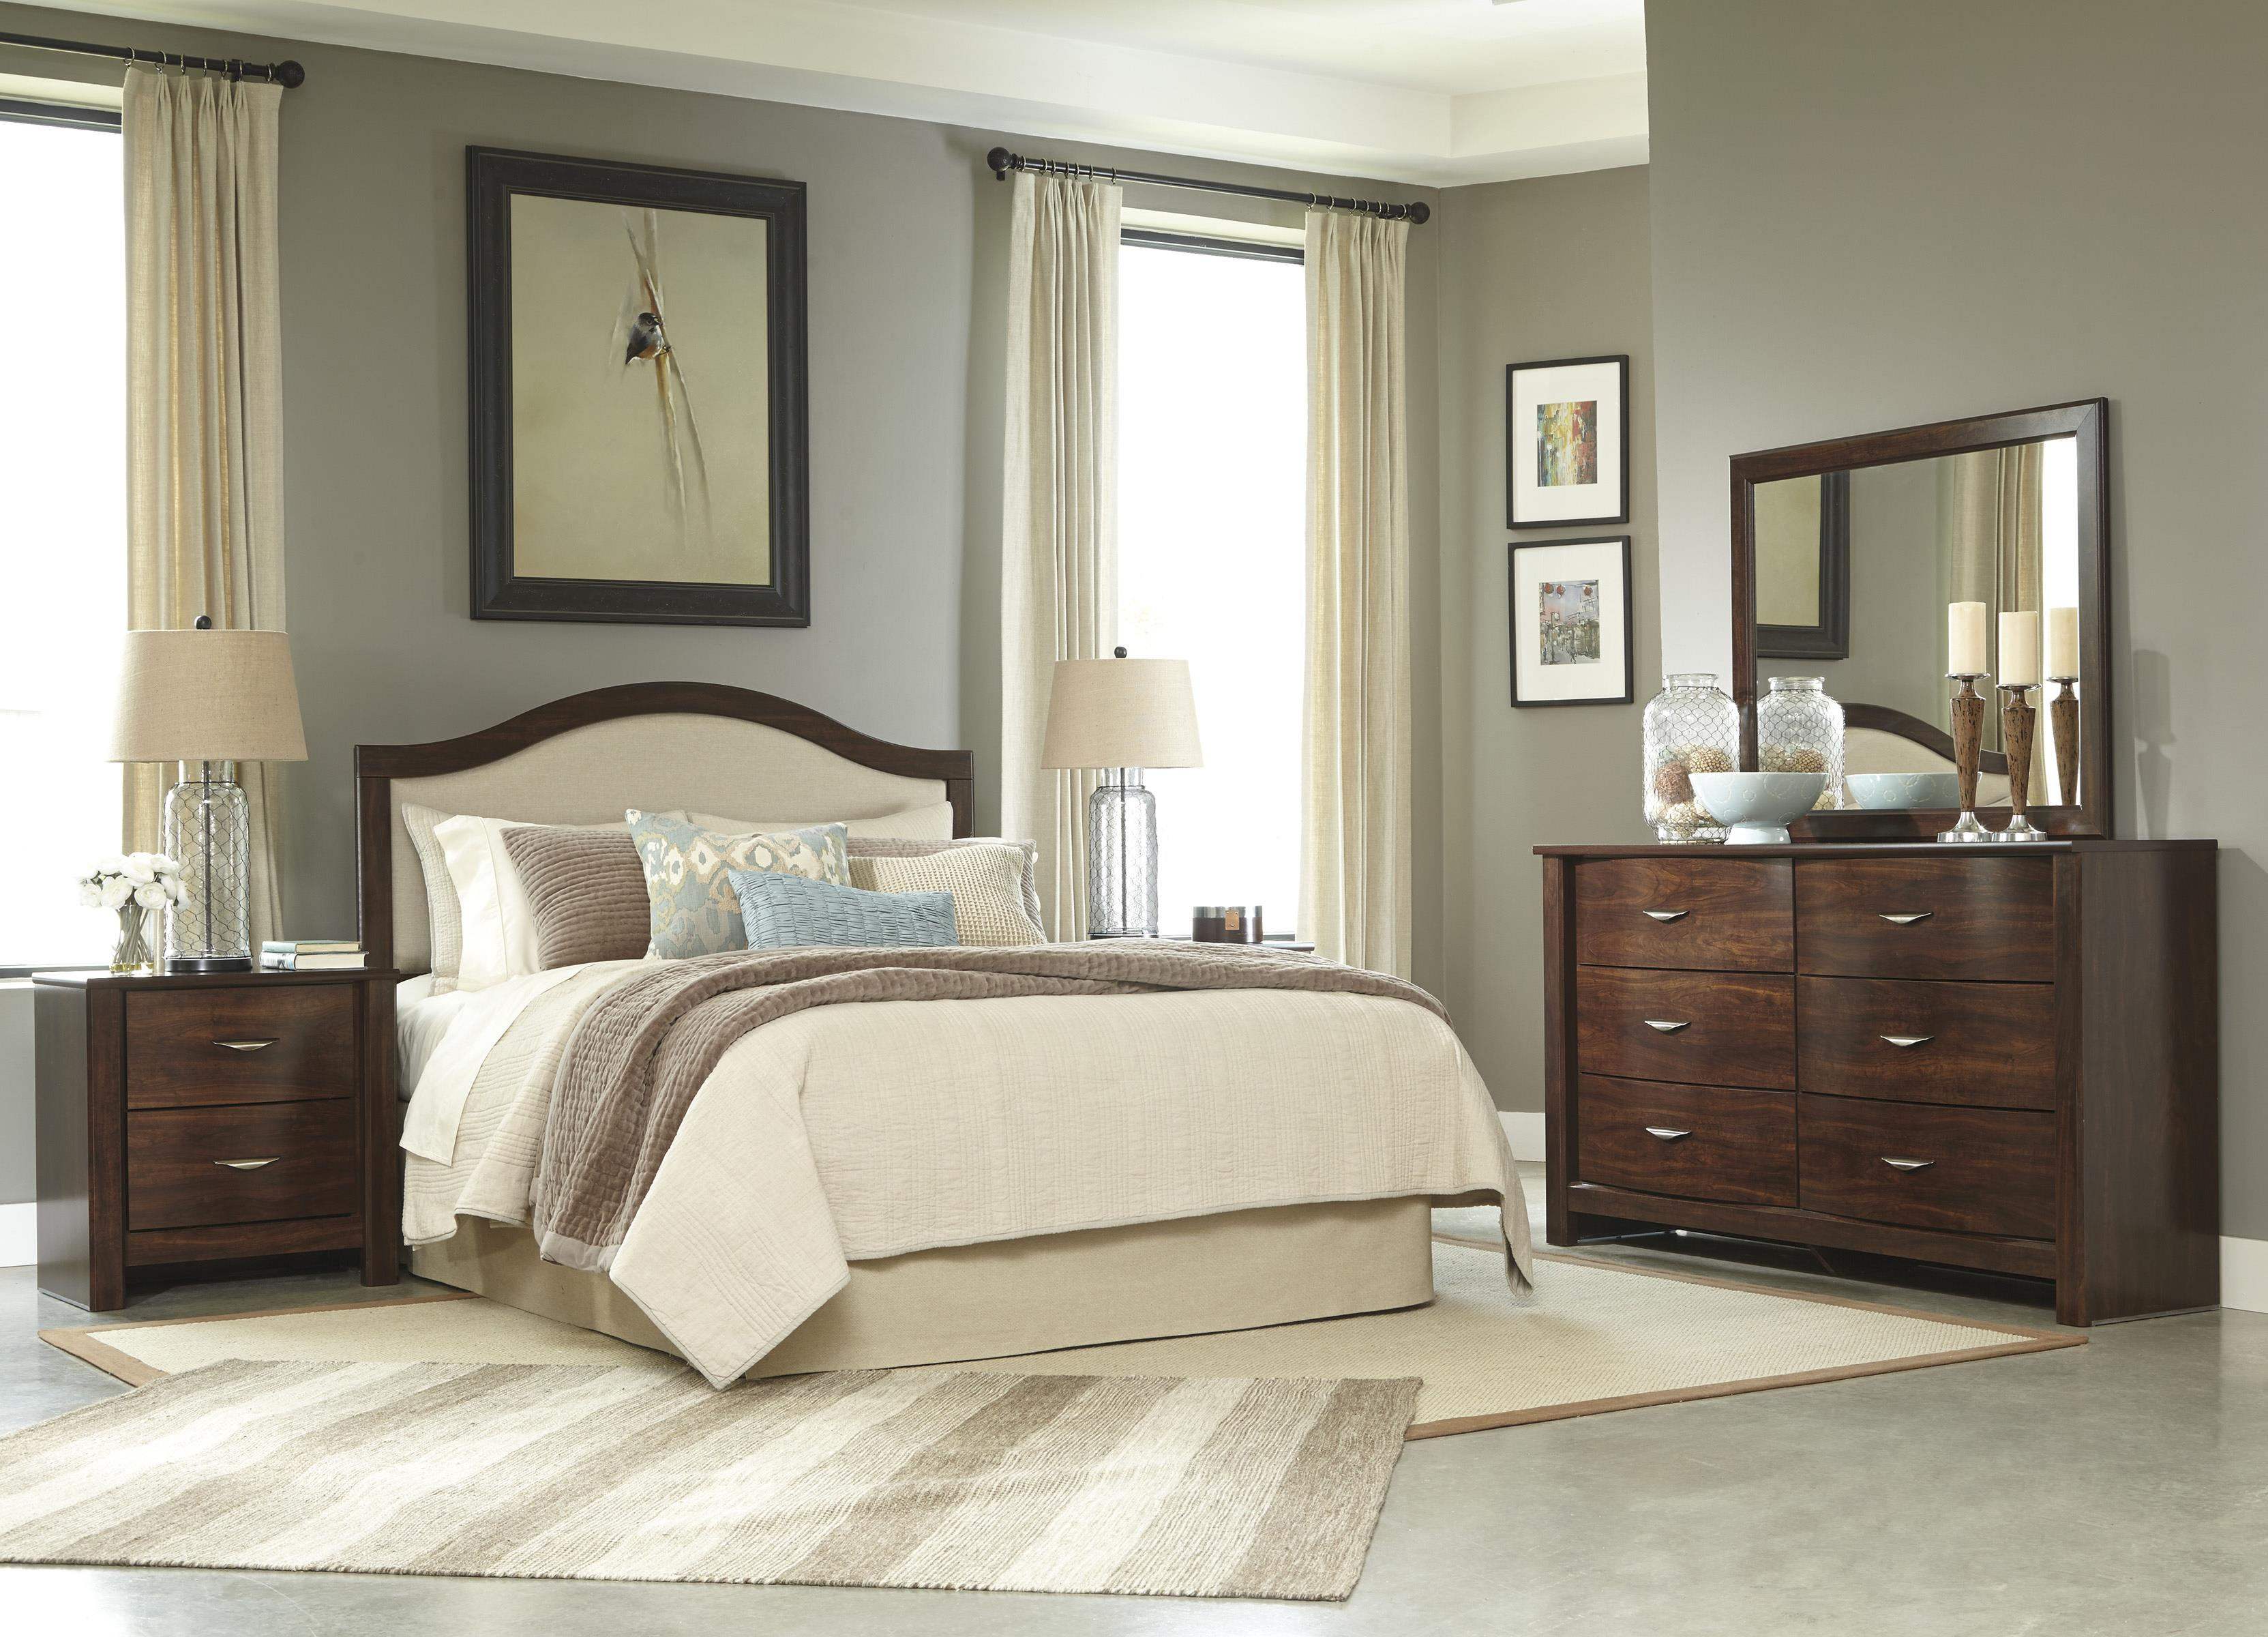 Signature Design by Ashley Corraya Queen Bedroom Group - Item Number: B428 Q Bedroom Group 1